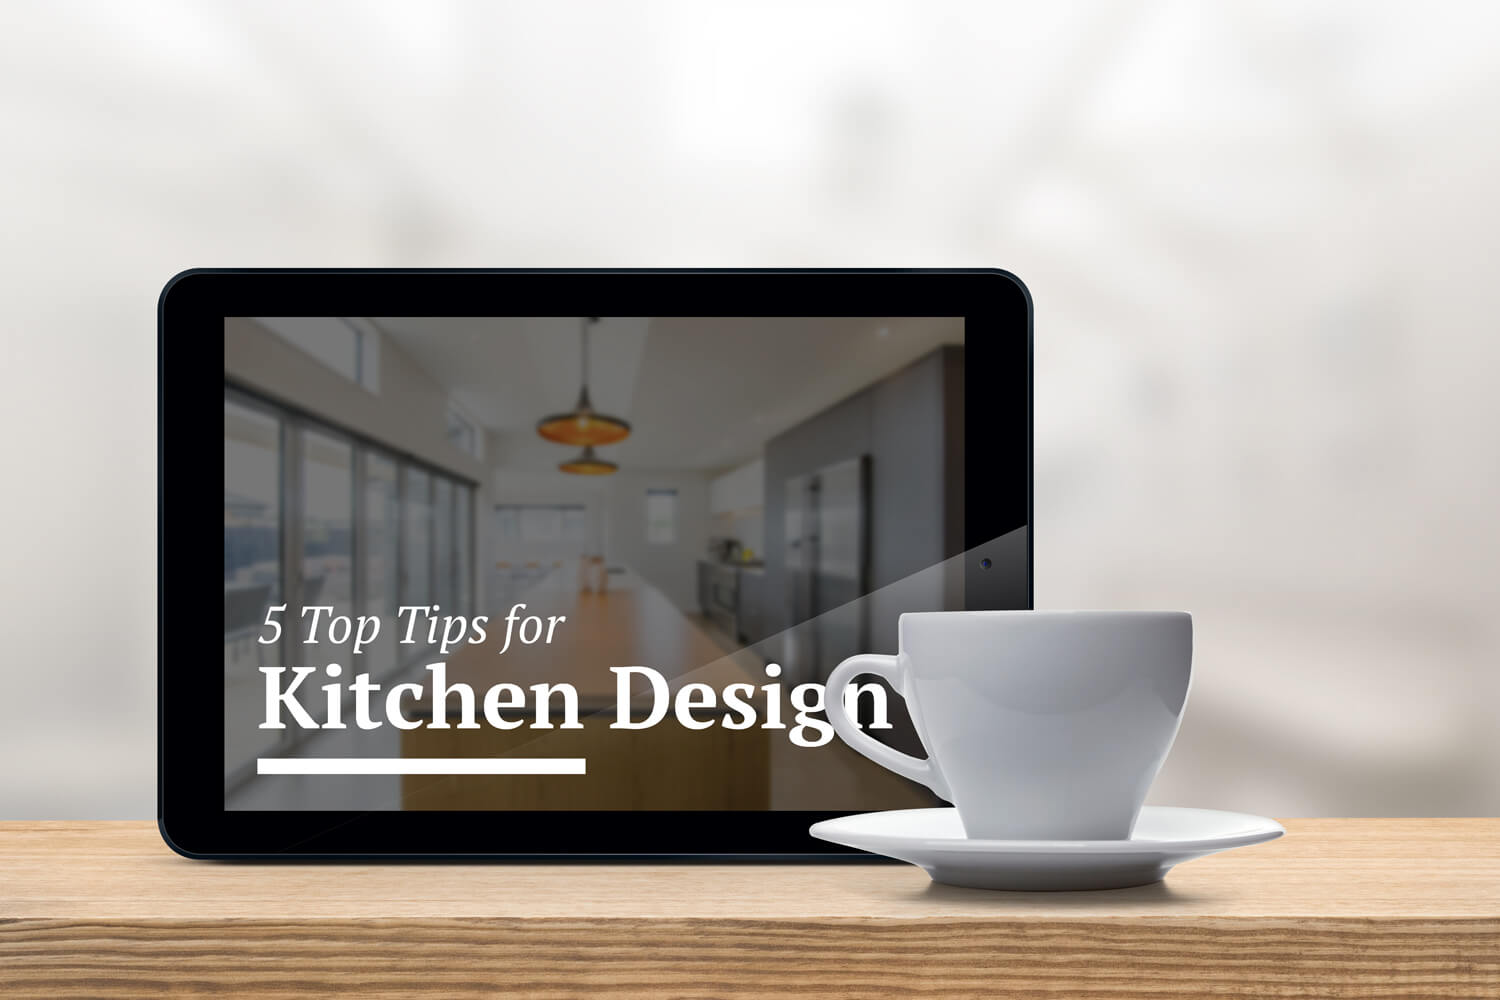 5 Top Tips for Kitchen Design